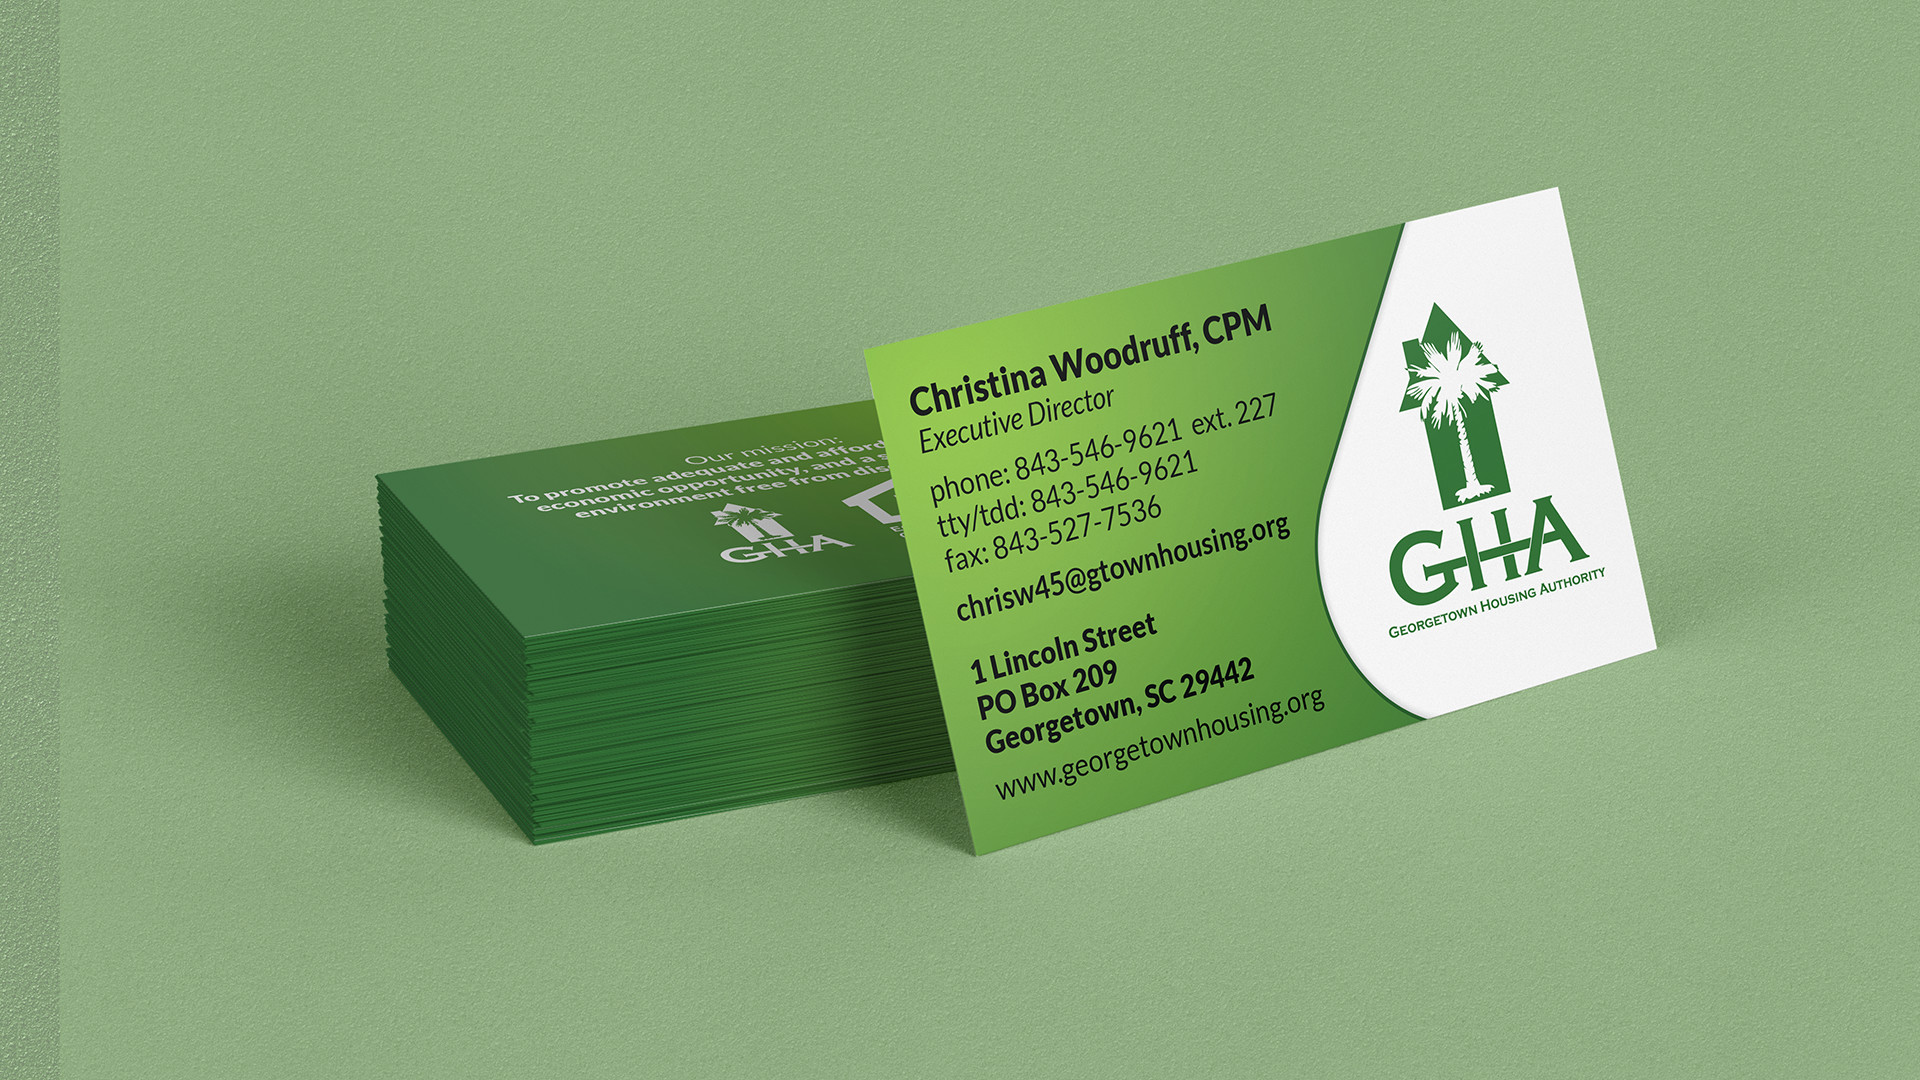 Georgetown housing authority business card design word georgetown housing authority business card reheart Gallery